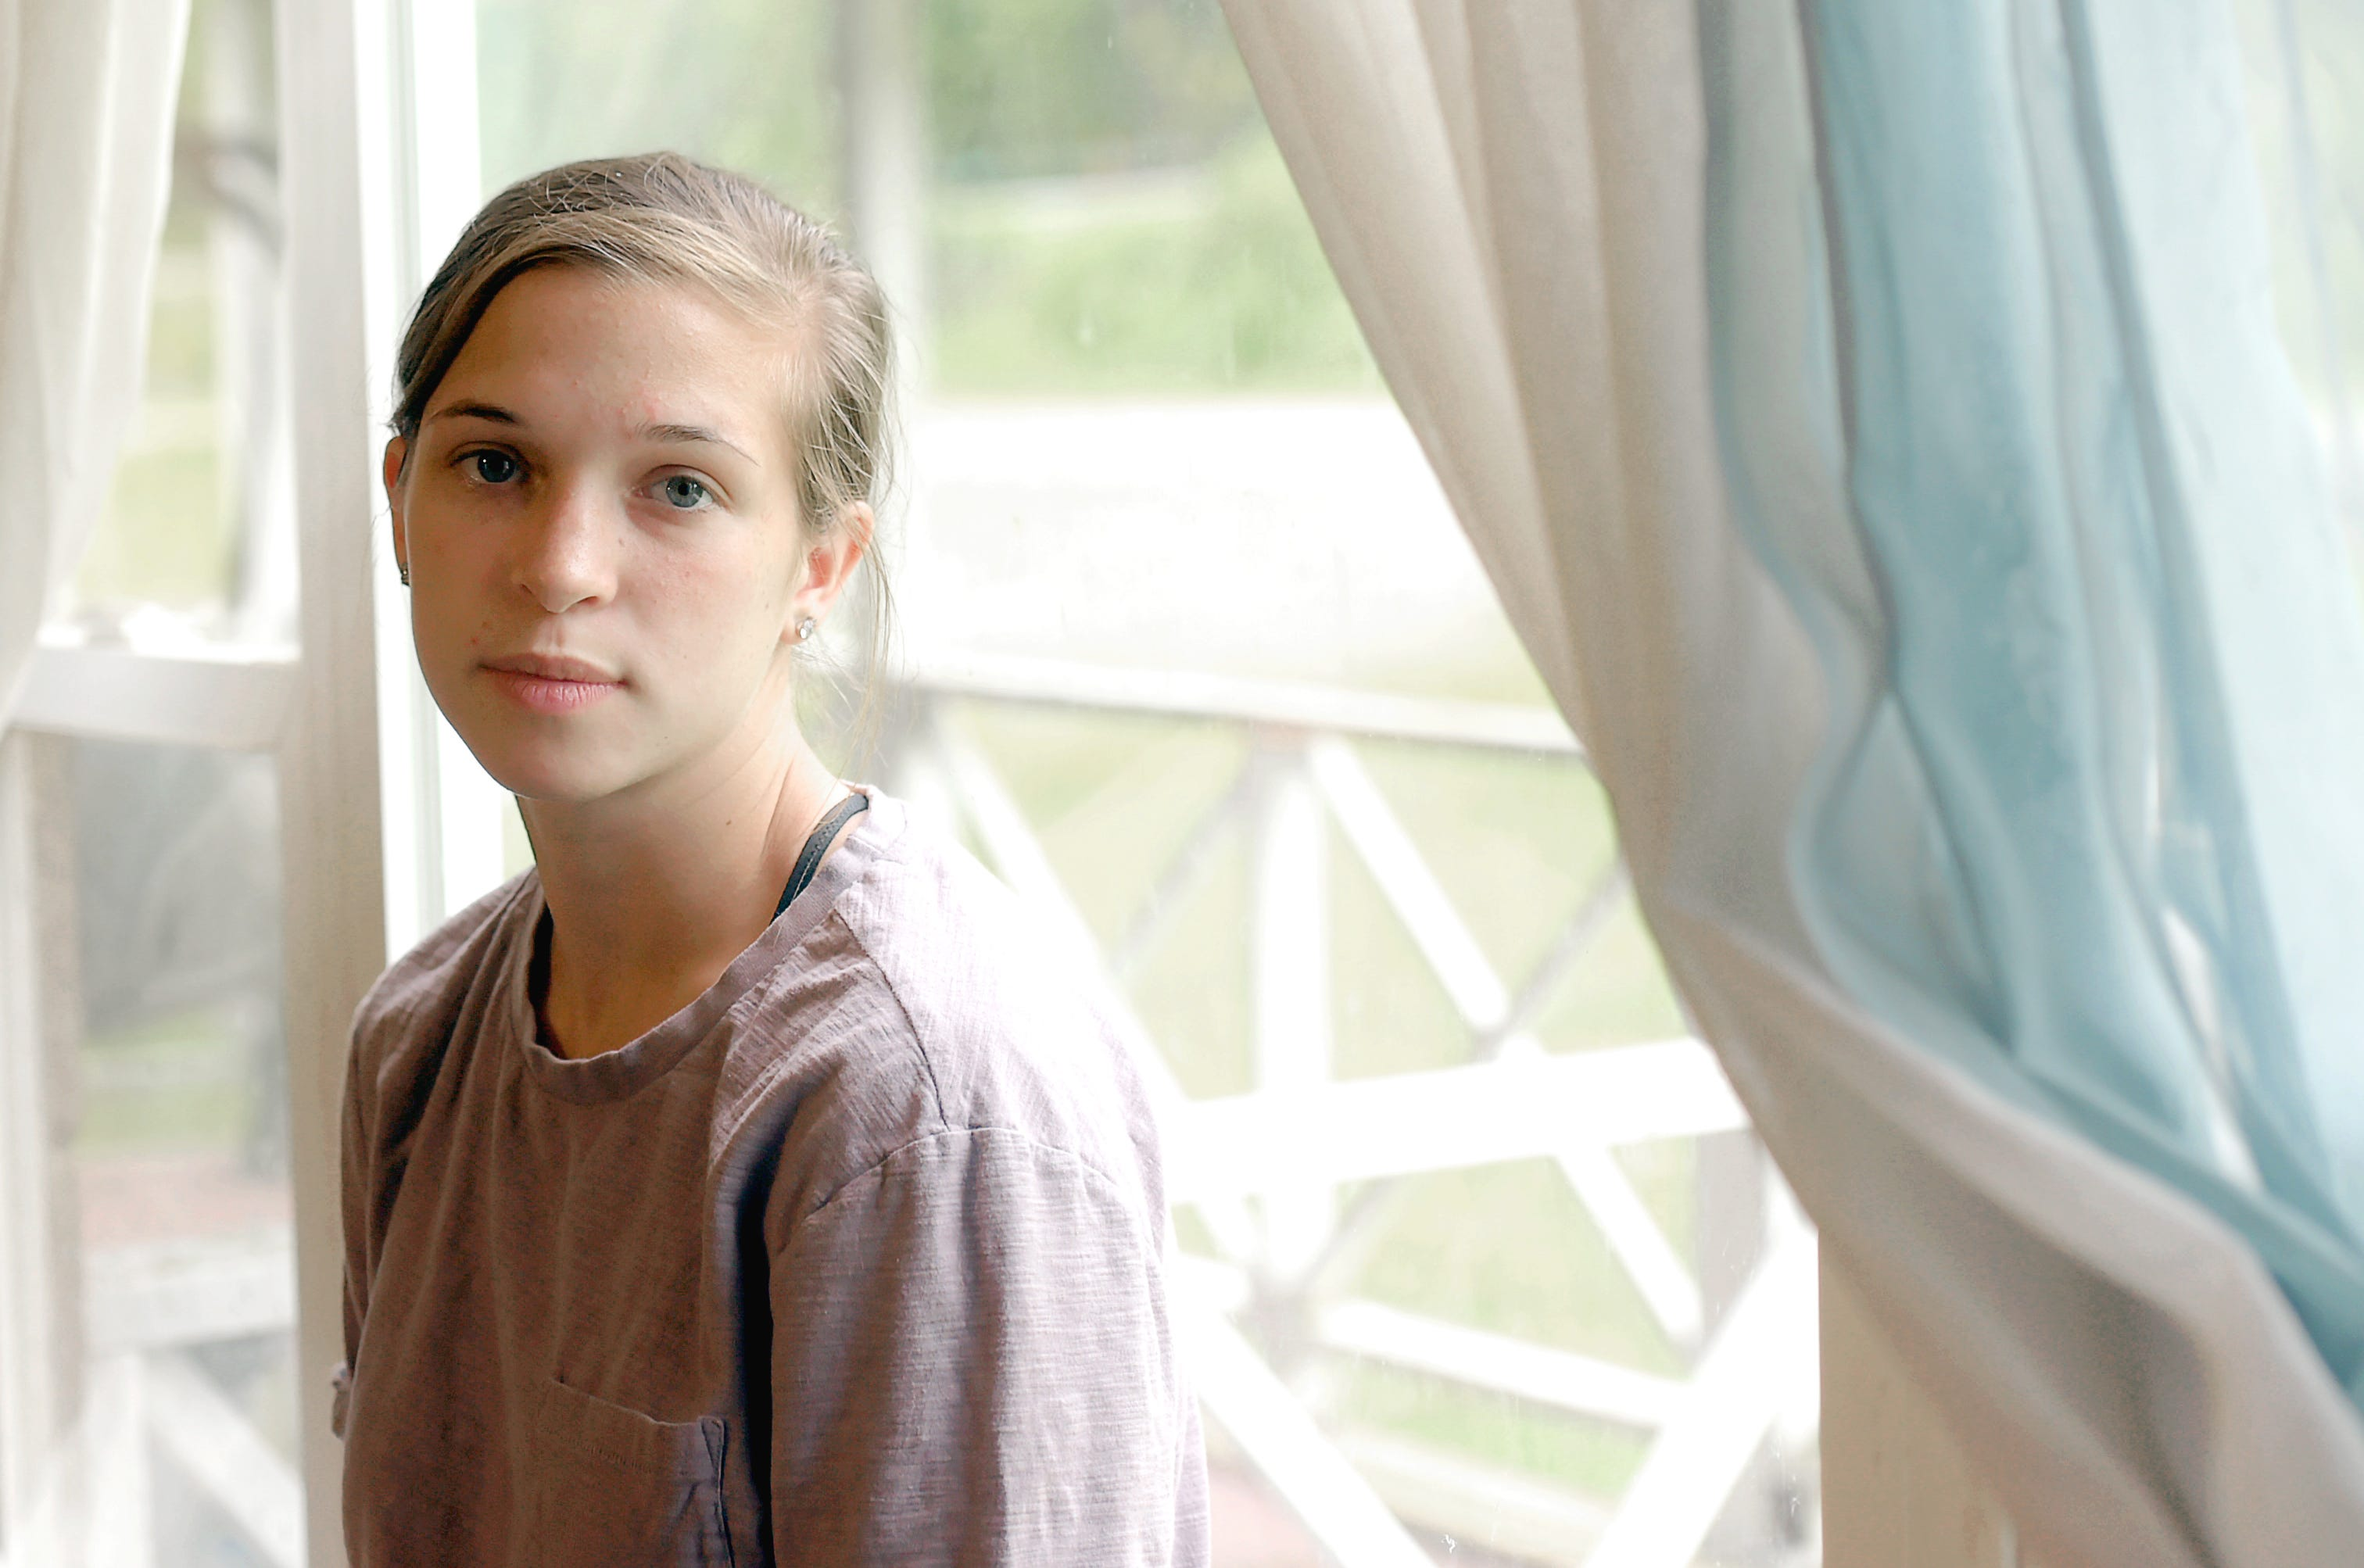 Emily Brown in her family's East Branch home on Tuesday, May 28, 2019. Both Emily and her older sister were diagnosed with cystic fibrosis when they still toddlers.